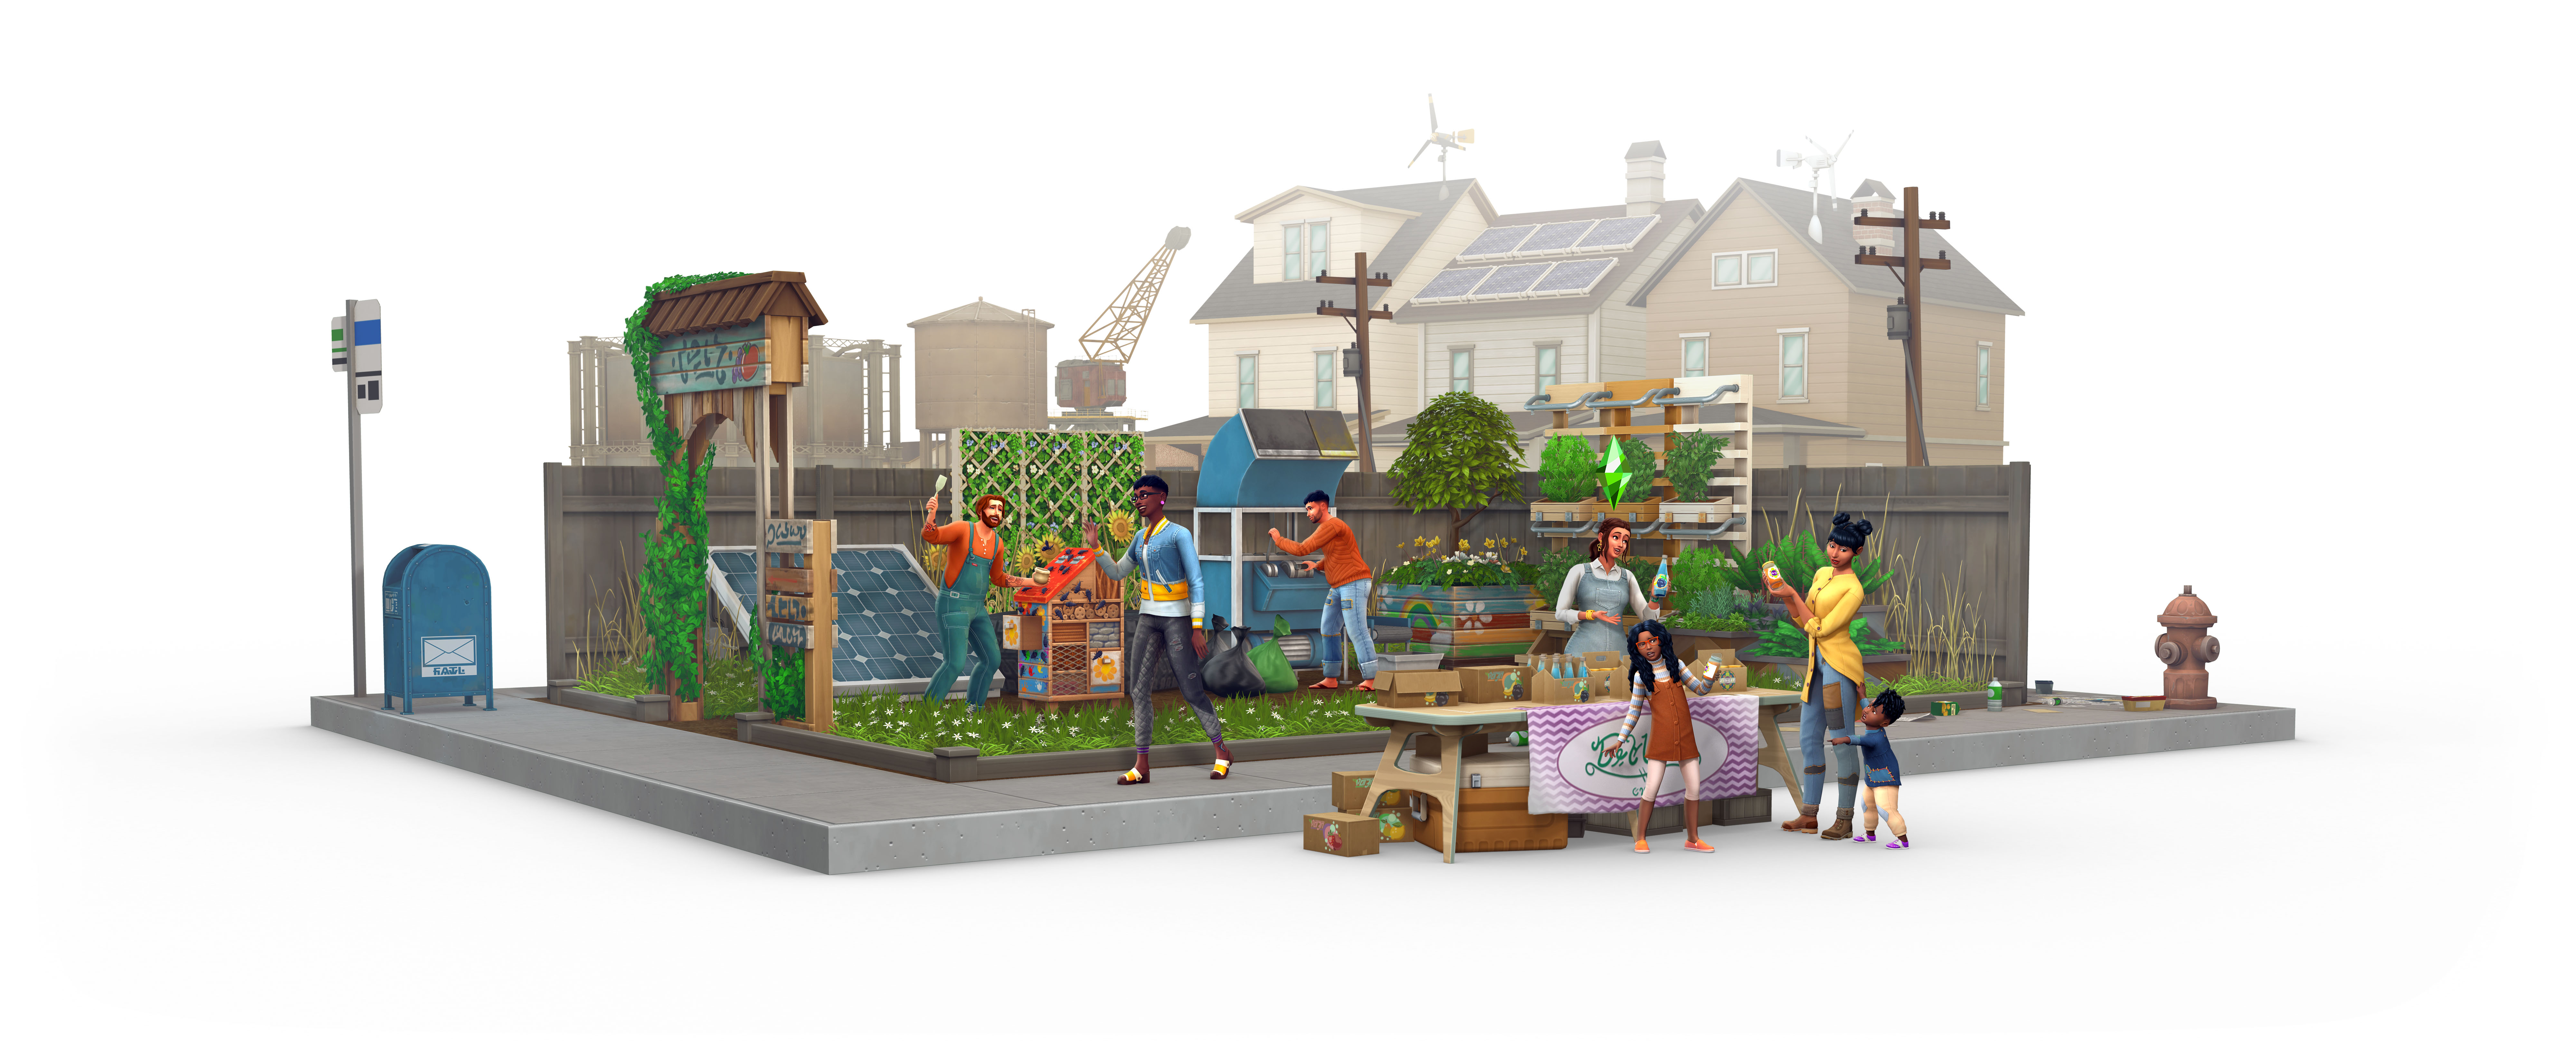 The Sims 4 goes green with the next Eco Lifestyle pack screenshot